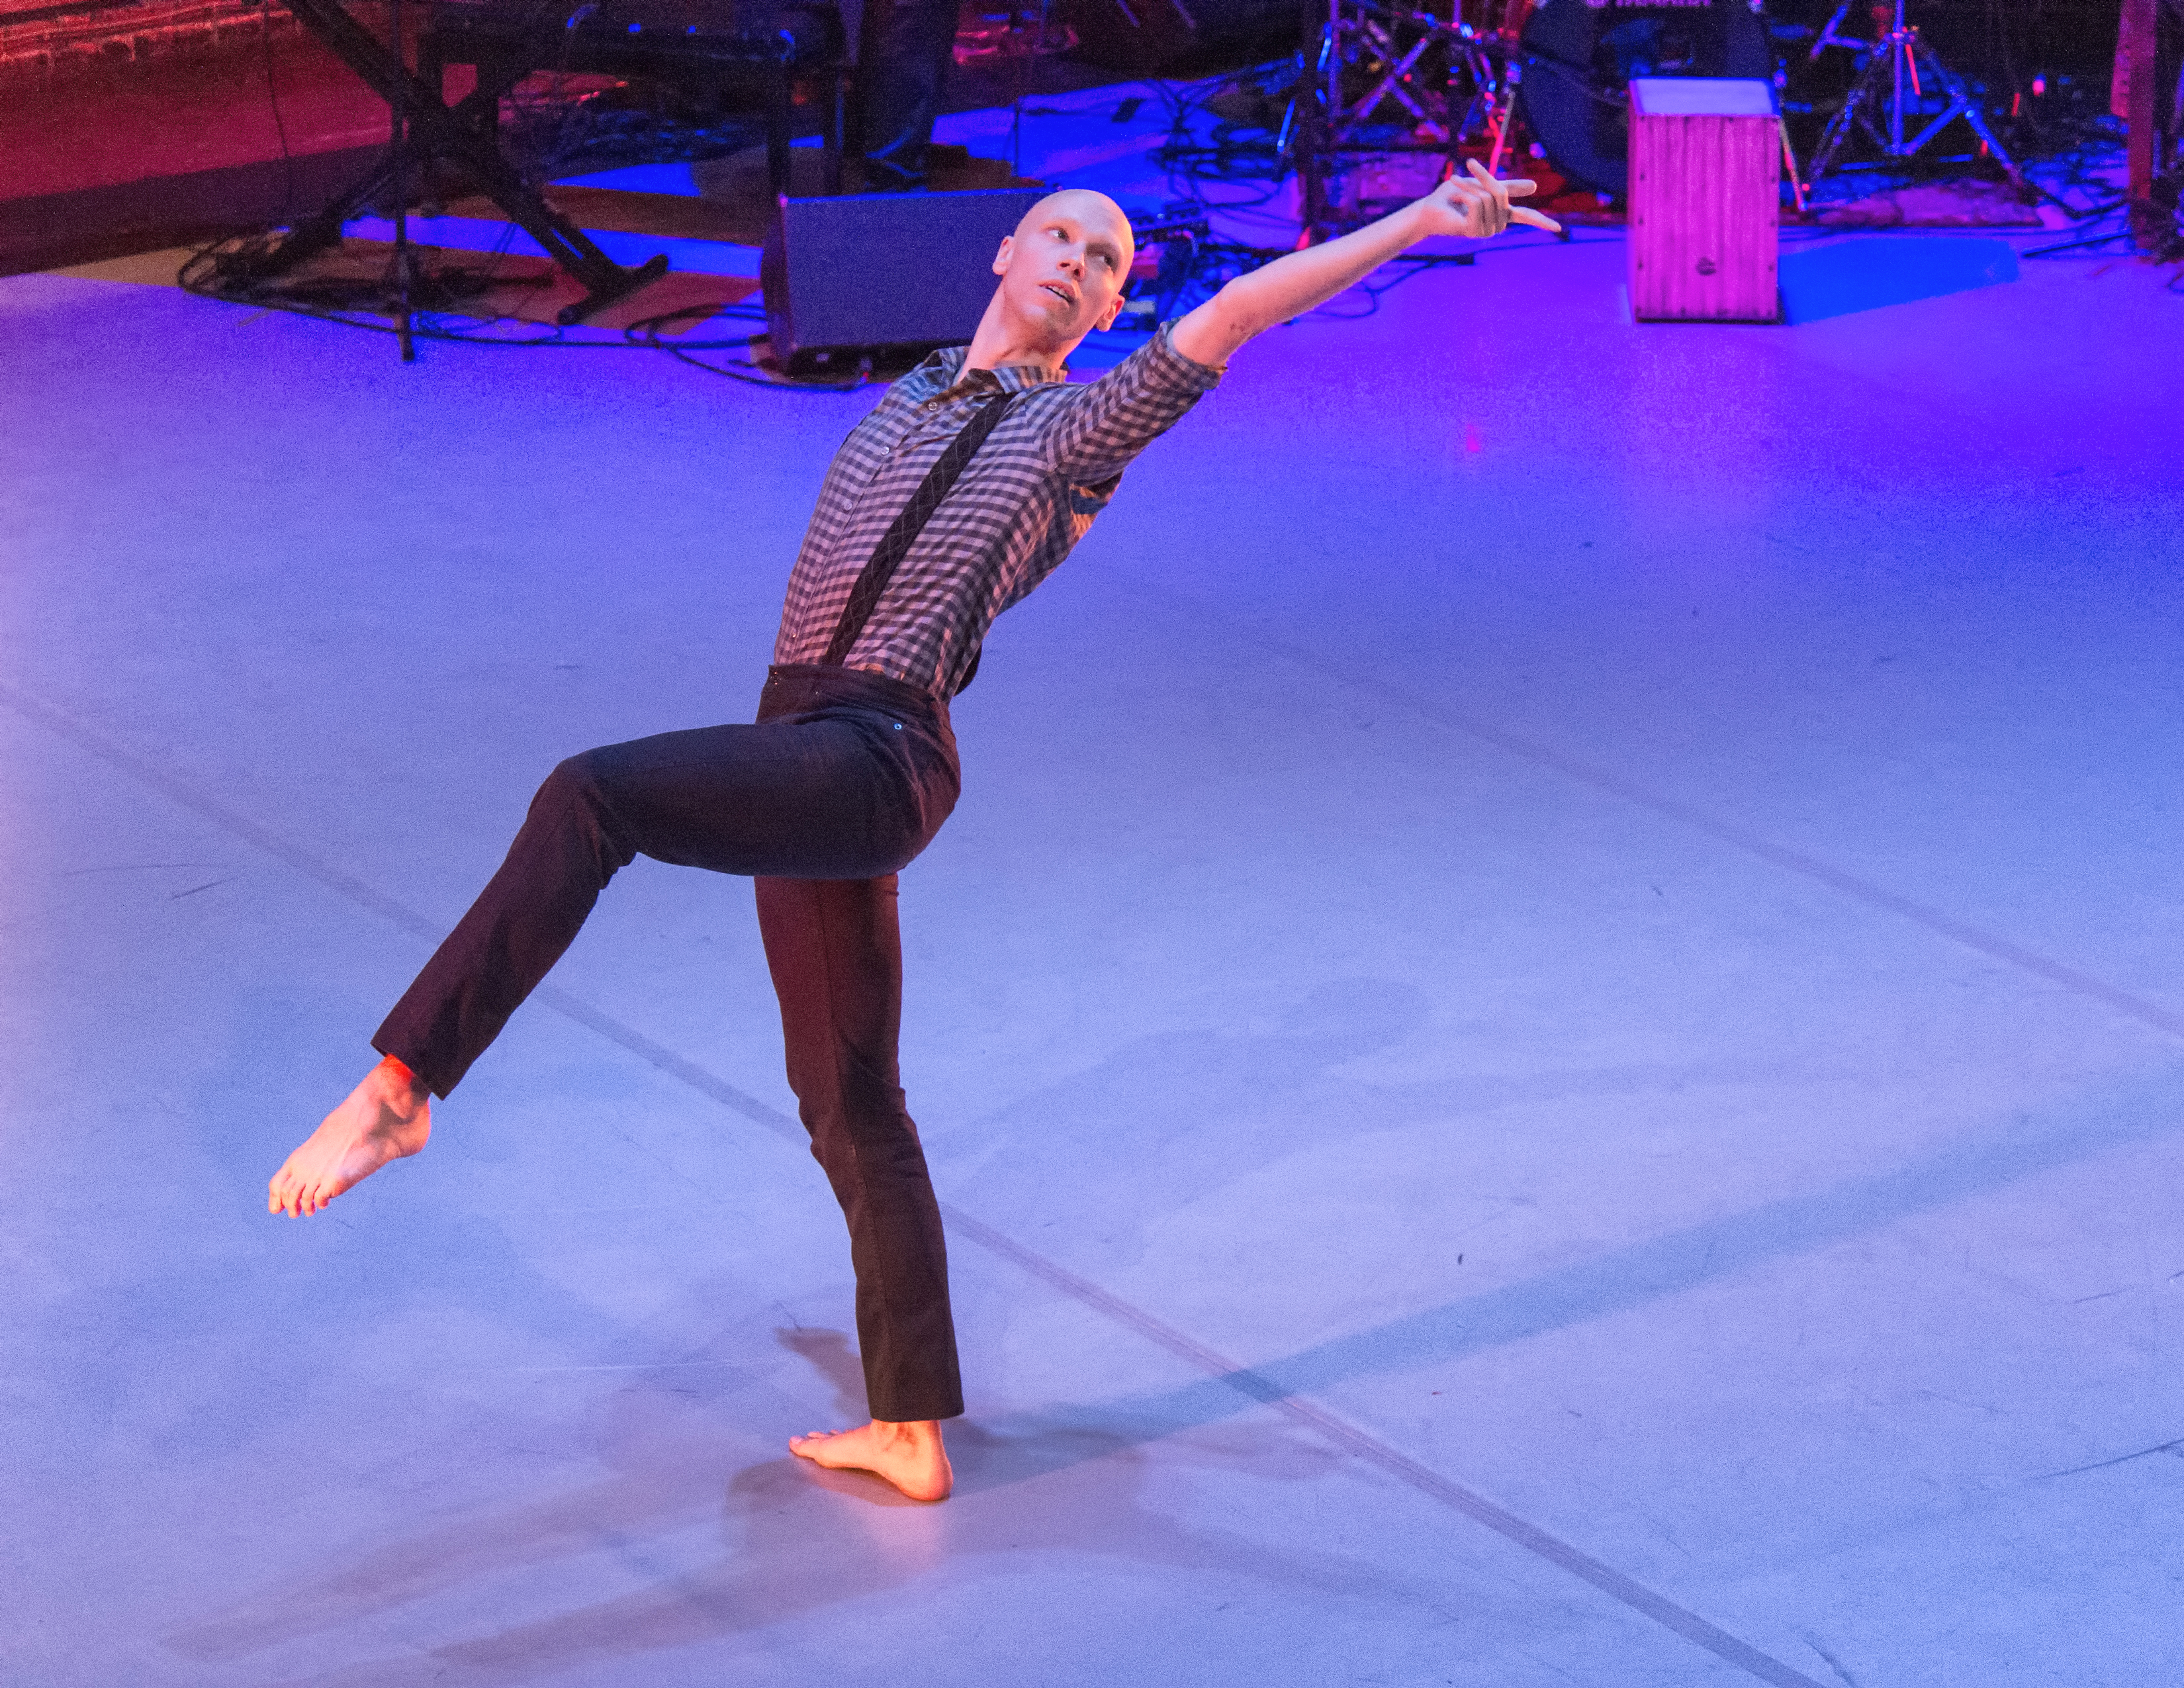 Attack Theatre's Dane Toney demonstrates that if you want to move forward, you put your left leg sideways and point another way, unless you want to head thataway ... and that's sort of how it goes in 'The Rube Goldberg Variations.' (photo courtesy of Dr. Robert Kormos)